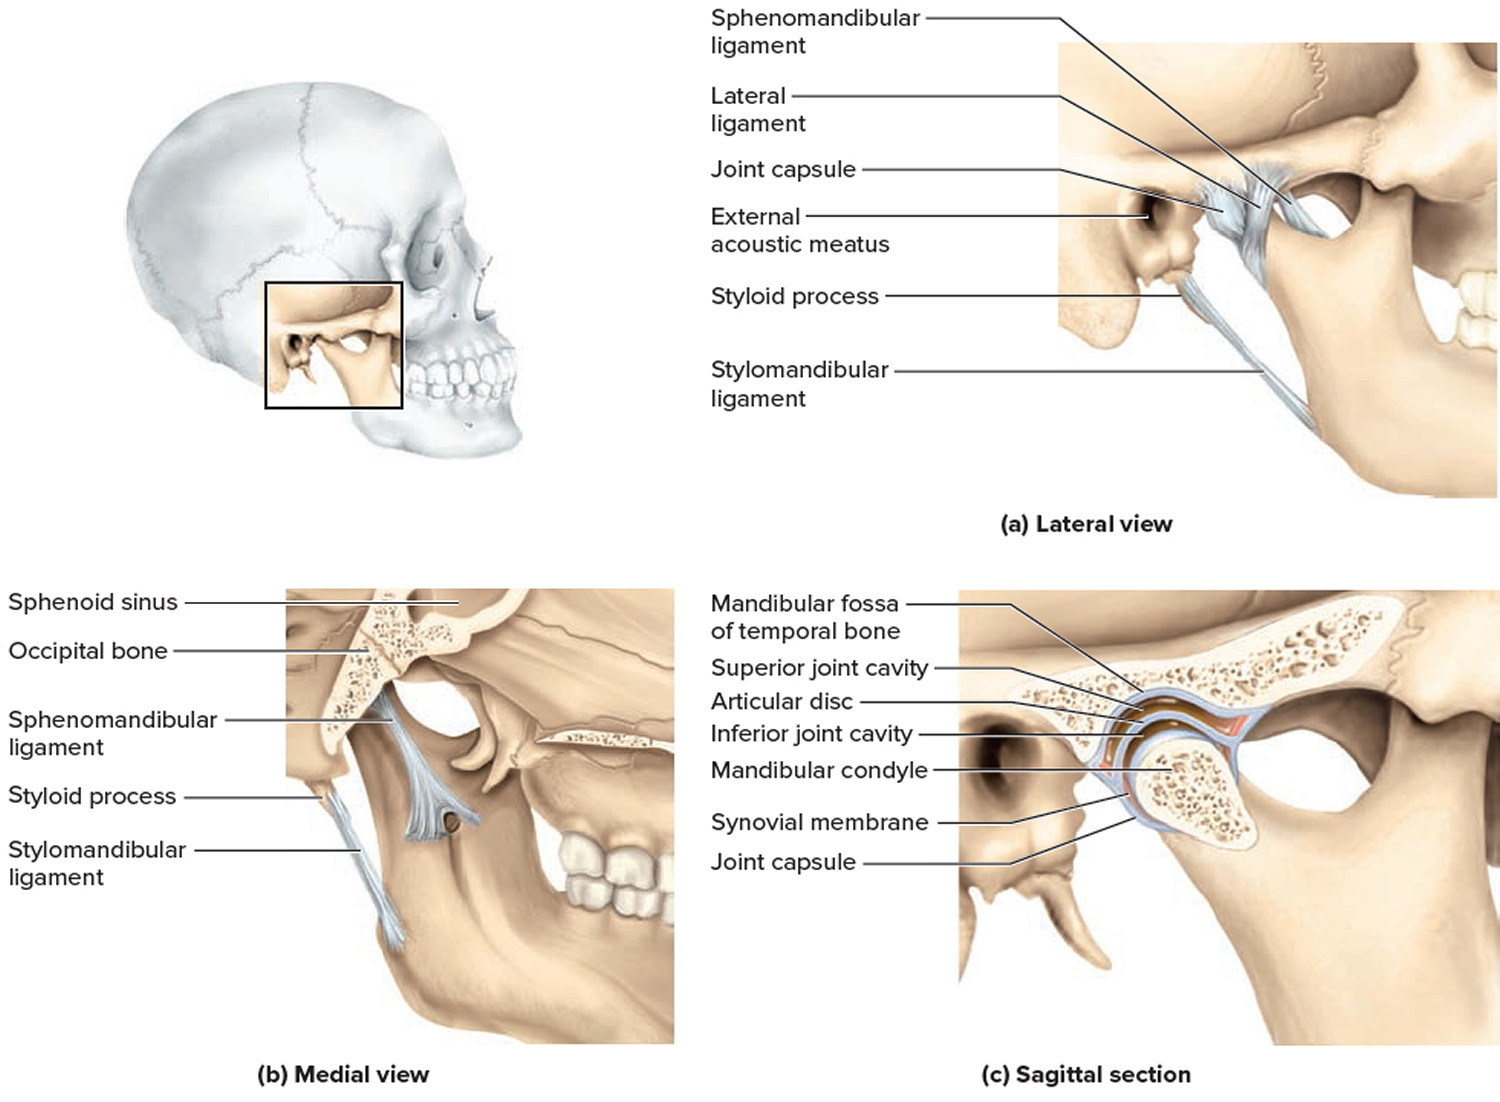 Types Classification Of Body Joints Cartilaginous Synovial Joint A synchondrosis is a joint that is connected with cartilage, like the place where the ribs meet the sternum. cartilaginous synovial joint